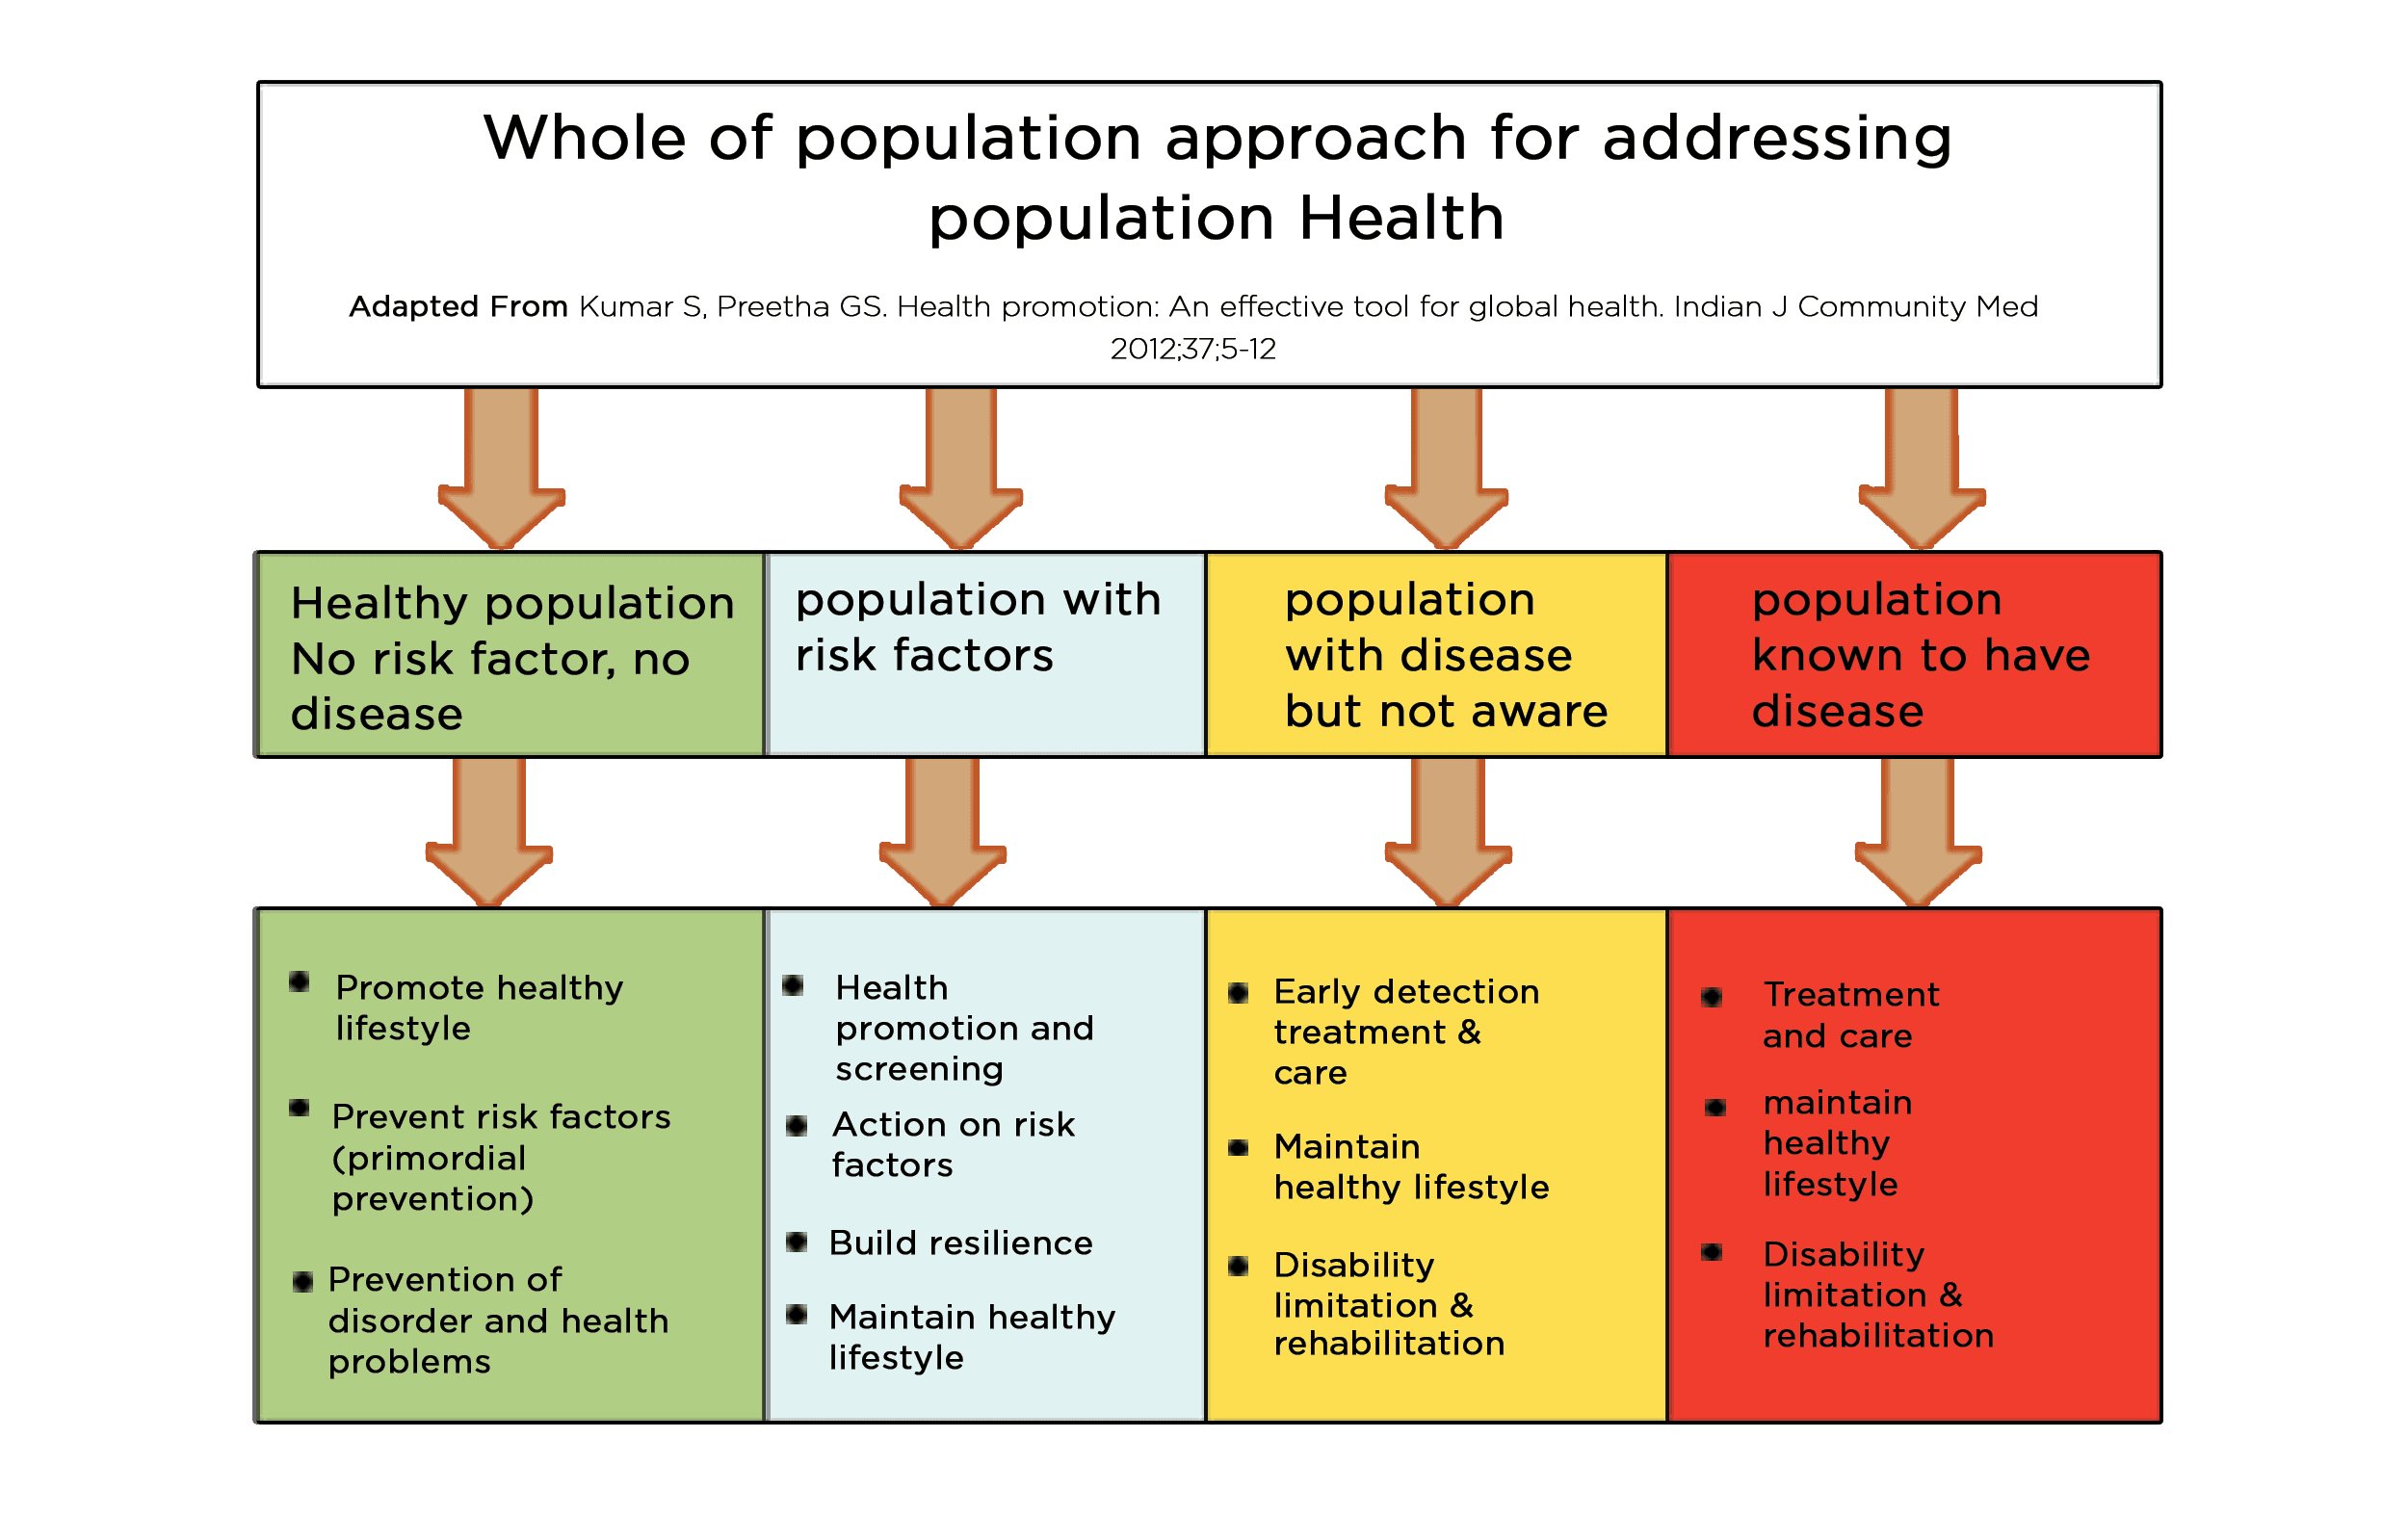 Conceptual framework to address health needs of the whole population